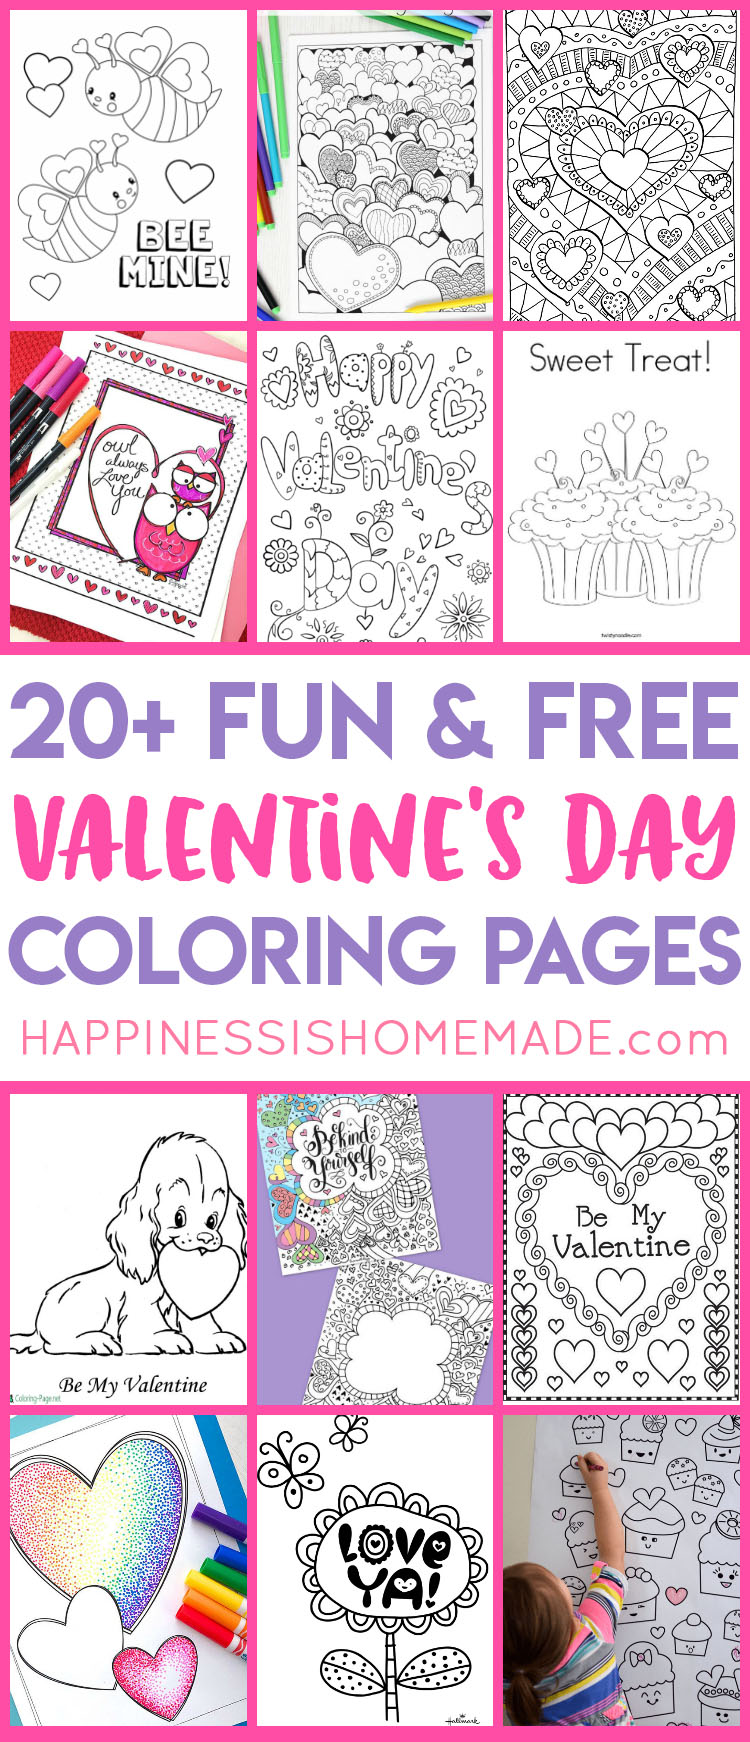 graphic about Printable Valentine Coloring Page named Valentines Coloring Web pages - Joy is Handmade